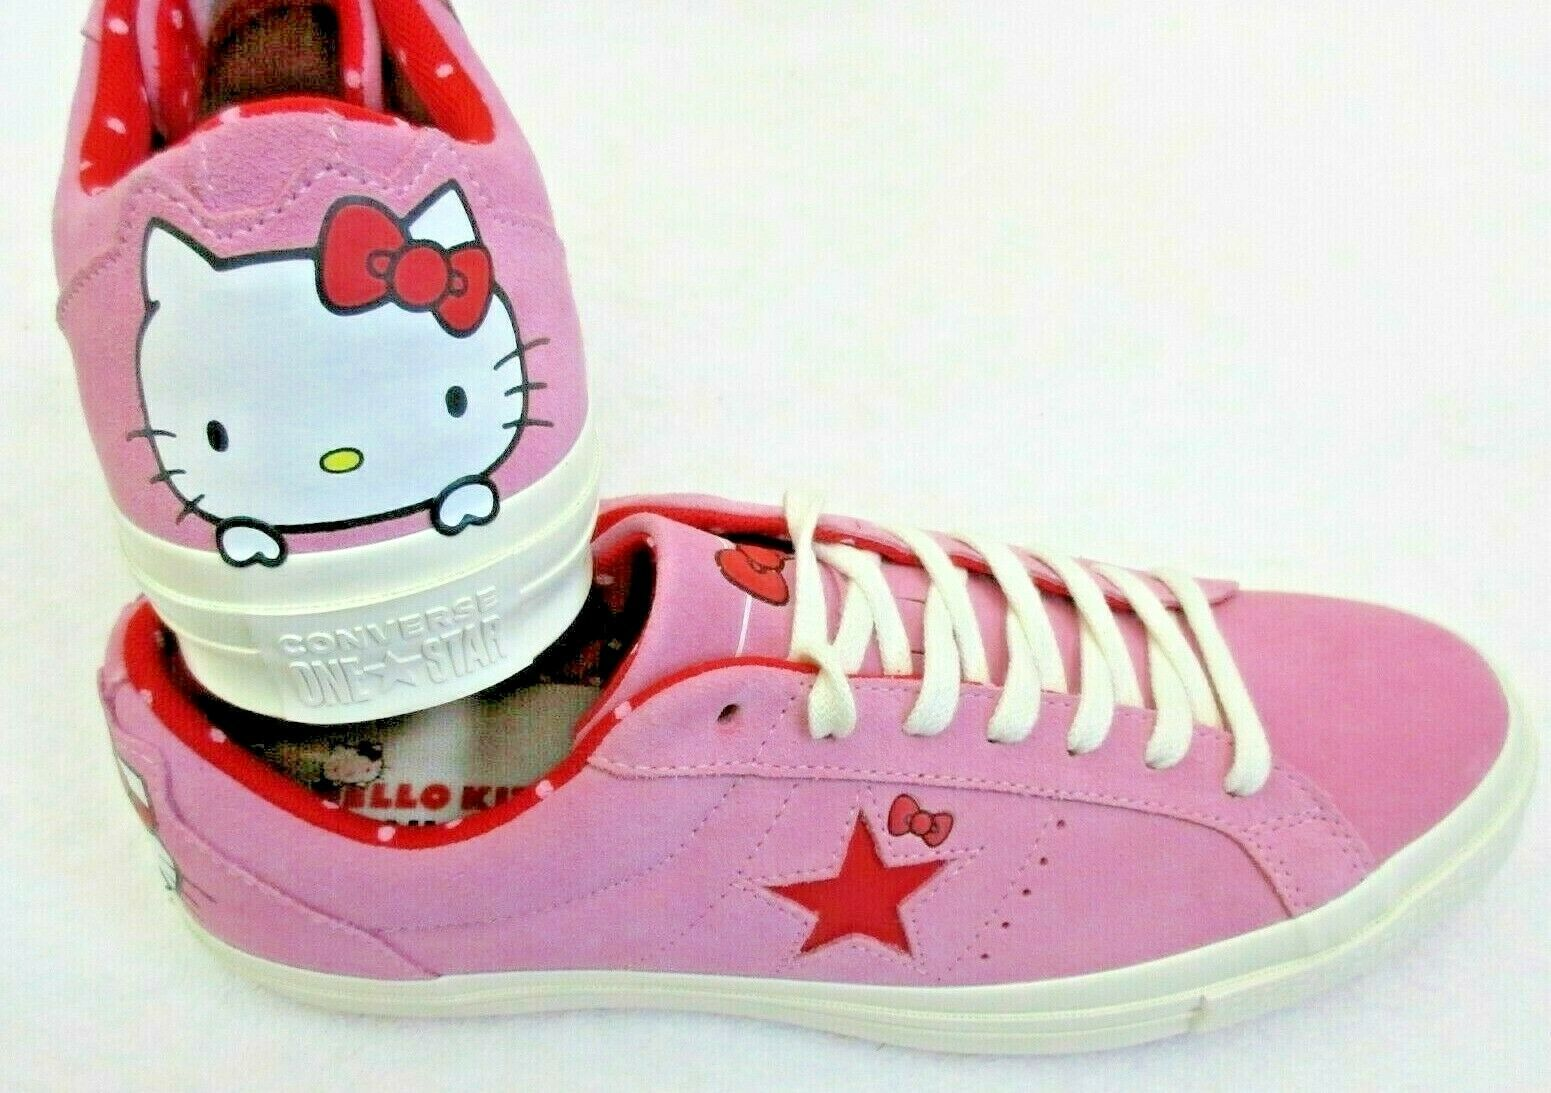 Converse One Star Ox Mens Hello Kitty Pink Prism Red Suede Shoes Size 10 New  image 2